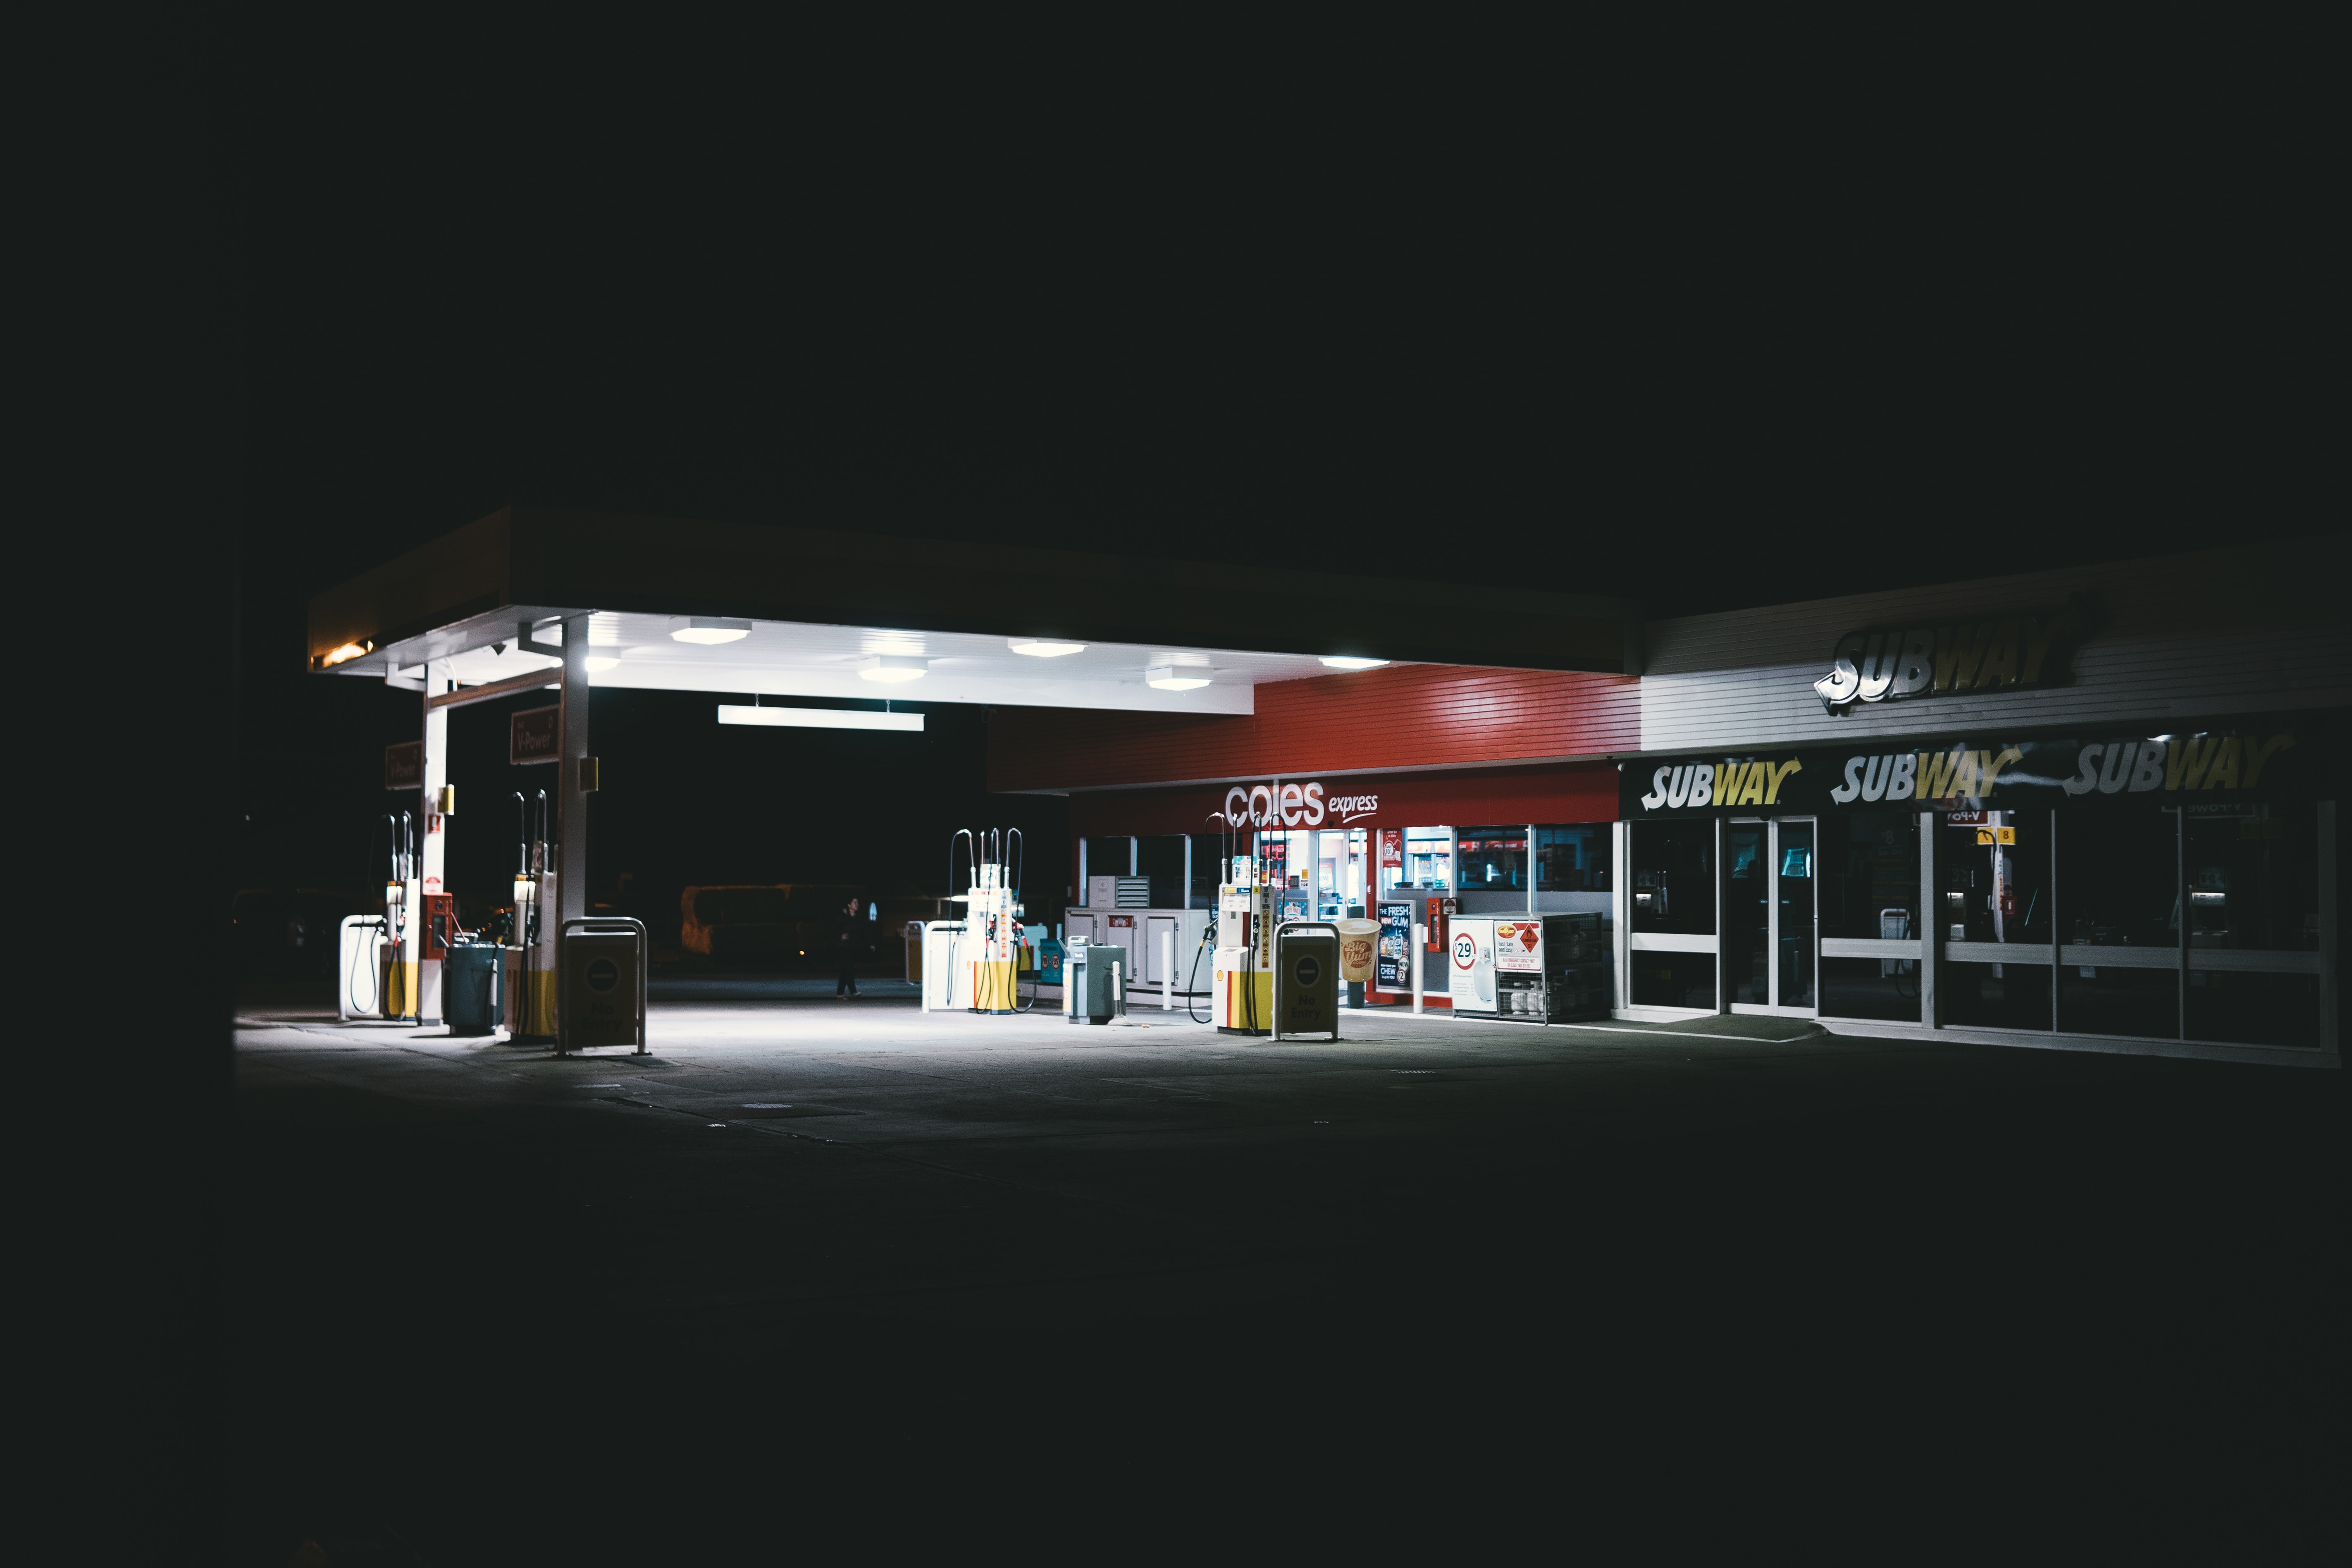 Excise Hike on Fuel Announced, But Prices to Remain Unchanged